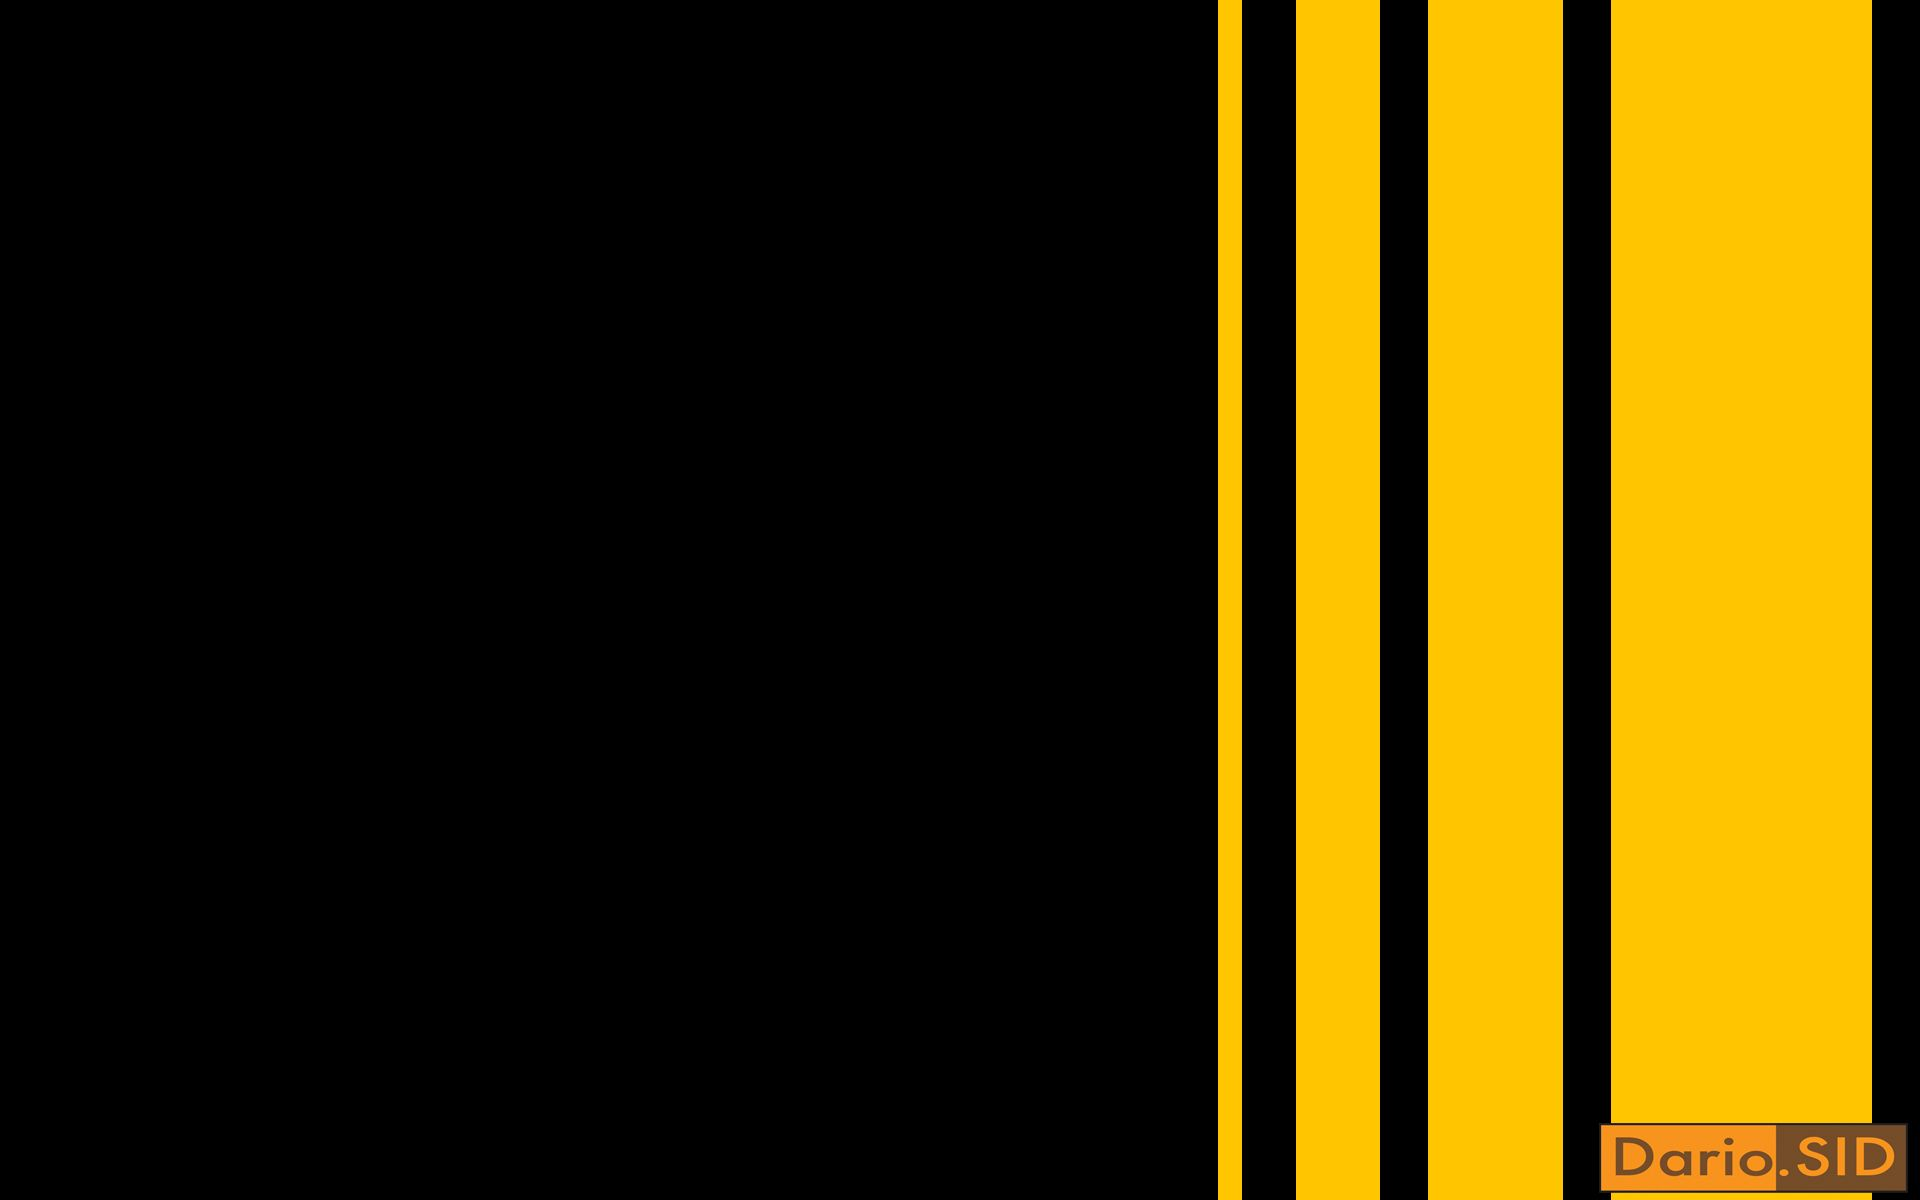 Black And Yellow 4k Wallpapers Top Free Black And Yellow 4k Backgrounds Wallpaperaccess